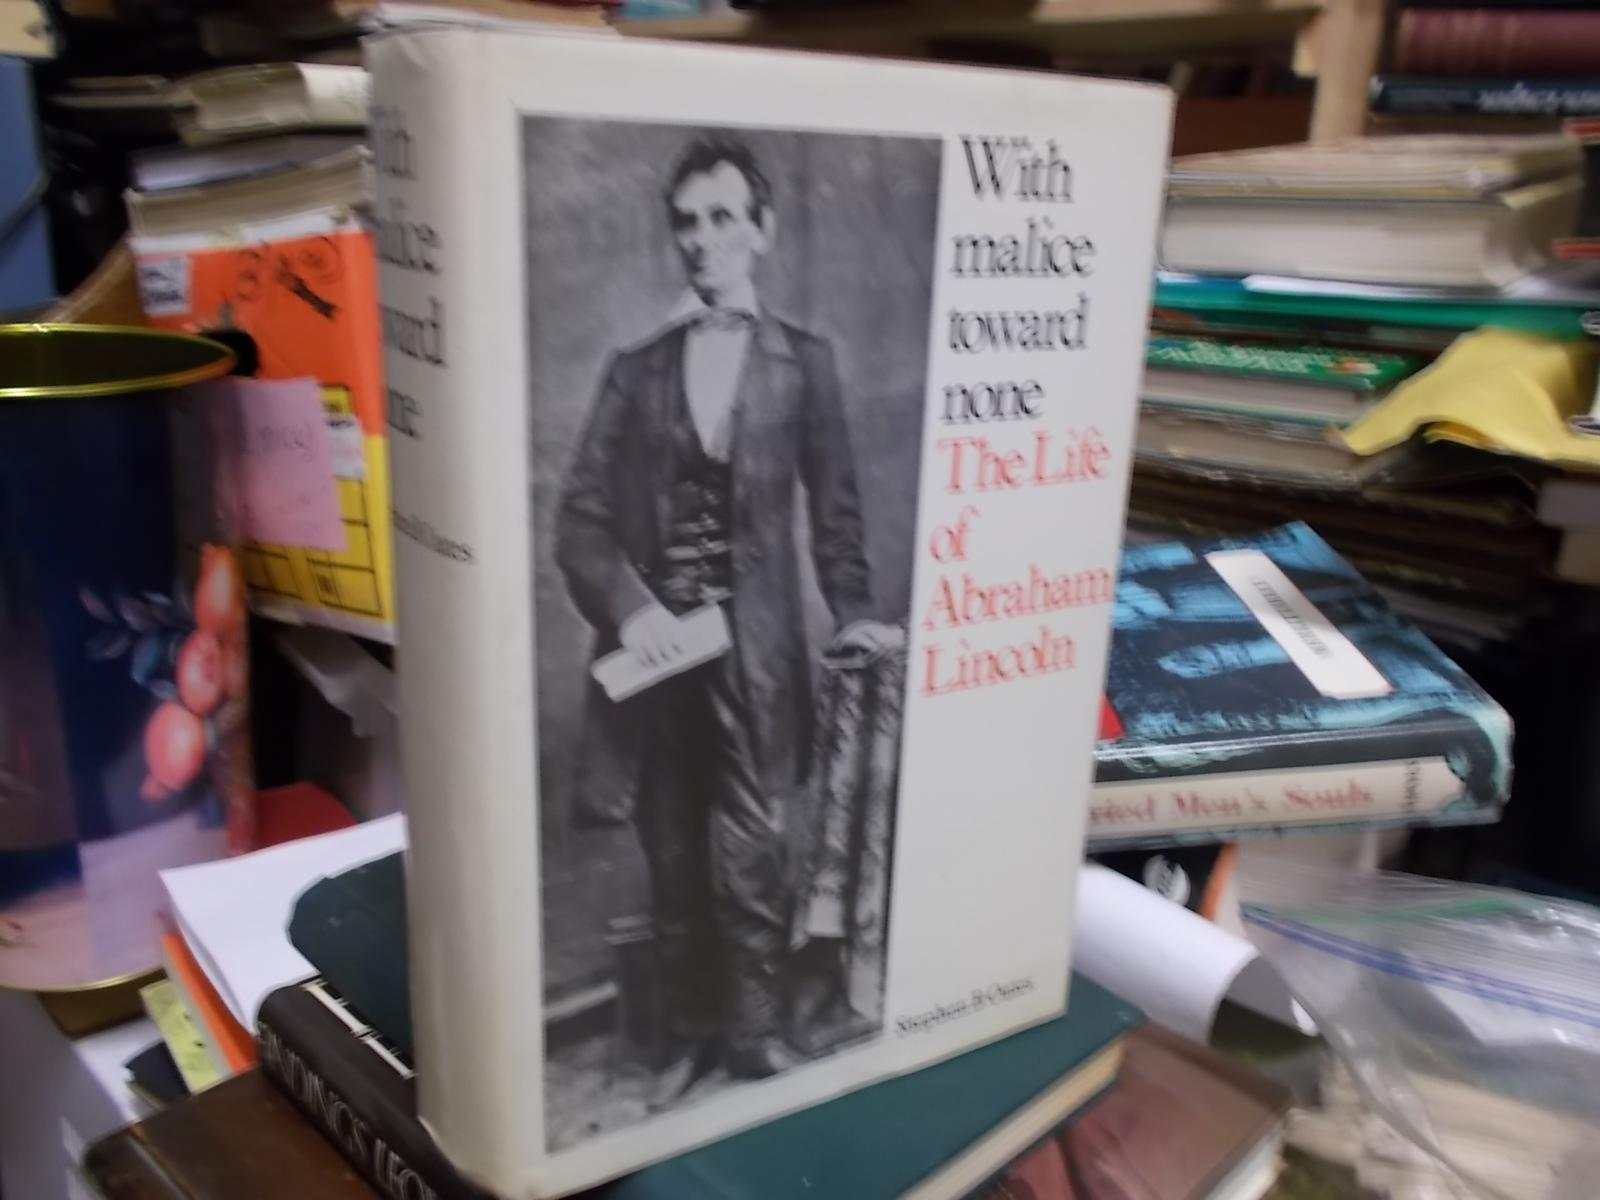 With Malice Toward None: A Life of Abraham Lincoln - Oates, Stephen B.